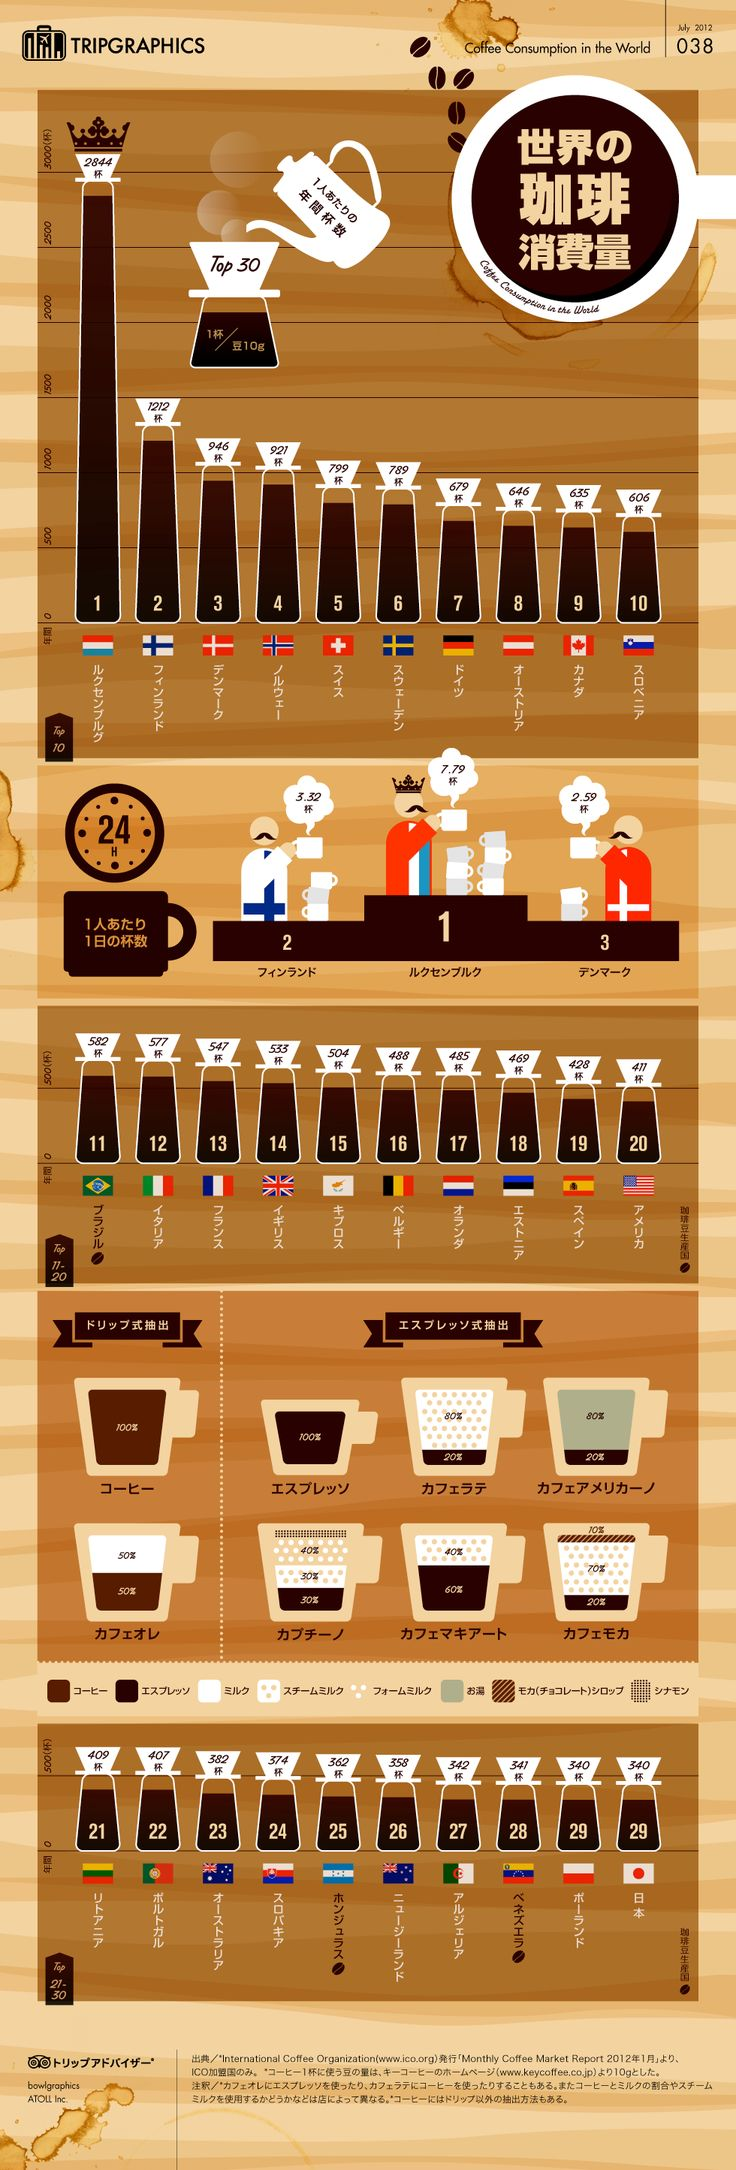 Top 30 of world coffee consumption#Repin By:Pinterest++ for iPad#